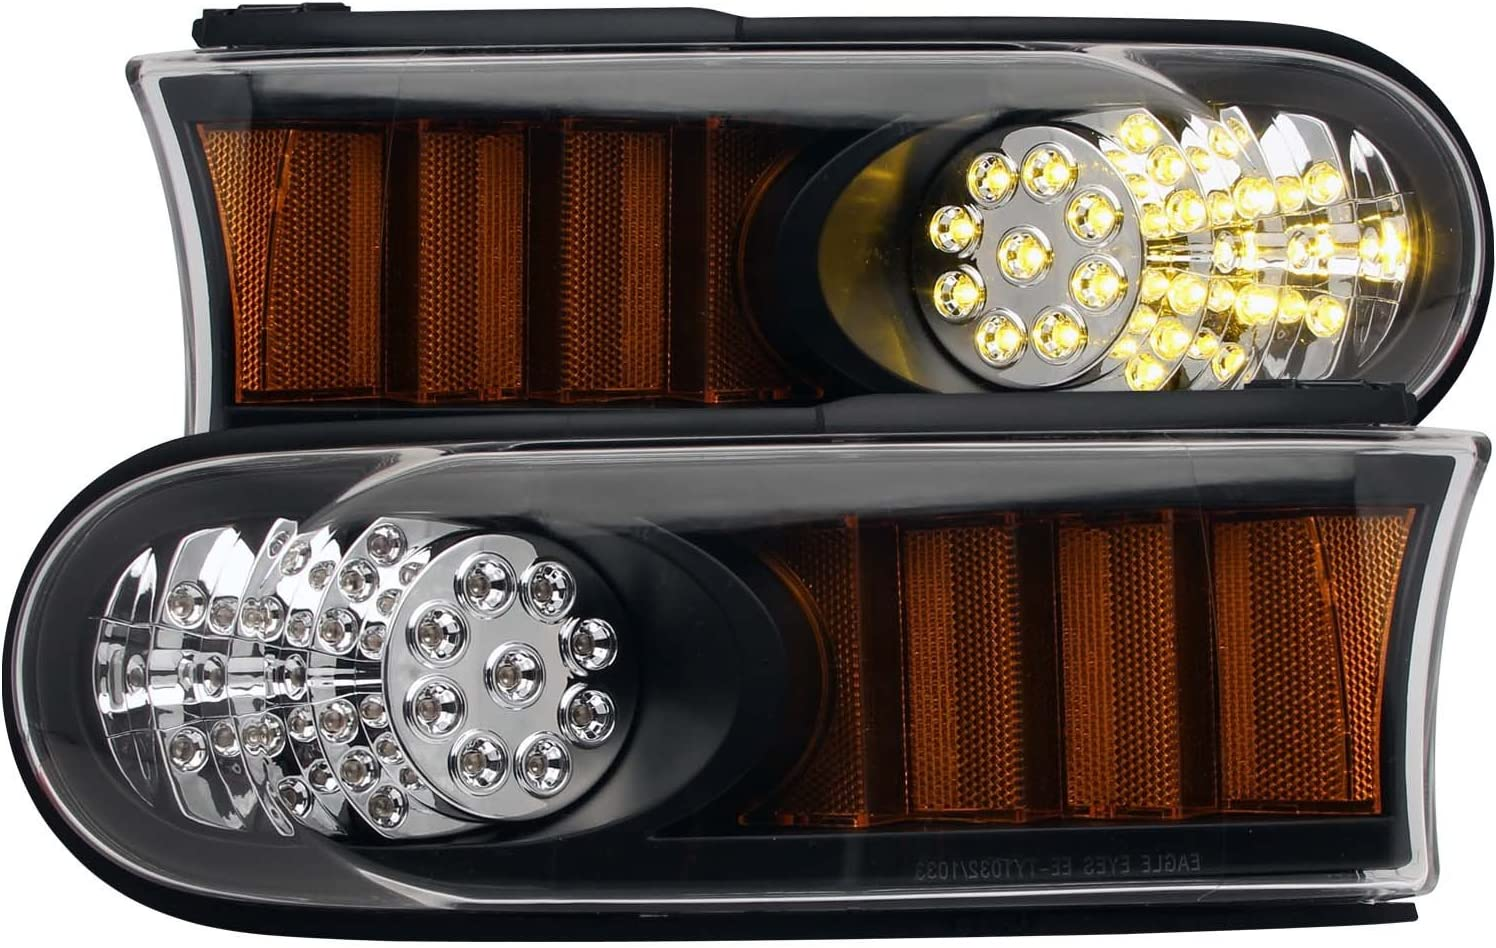 HEADLIGHTSDEPOT LED Soldering Park Outlet sale feature Lights Compatible Cruise FJ with Toyota